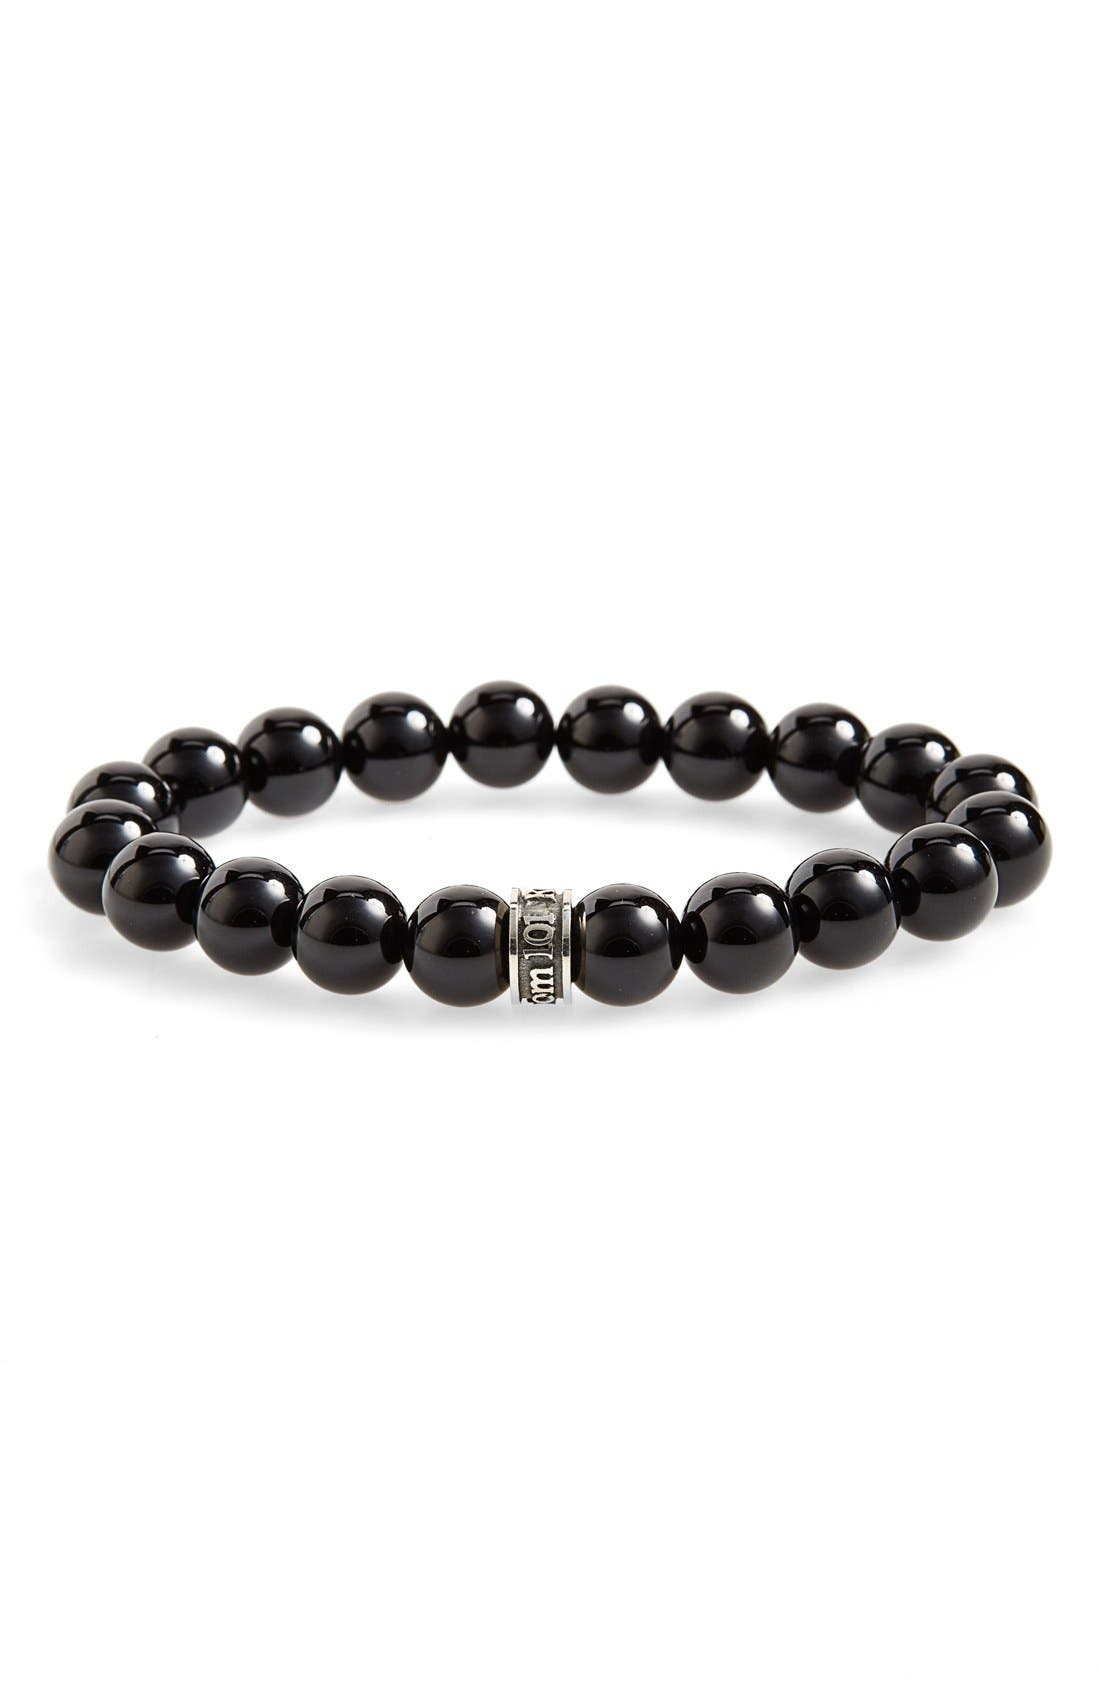 ROOM101 Polished Agate Bead Bracelet